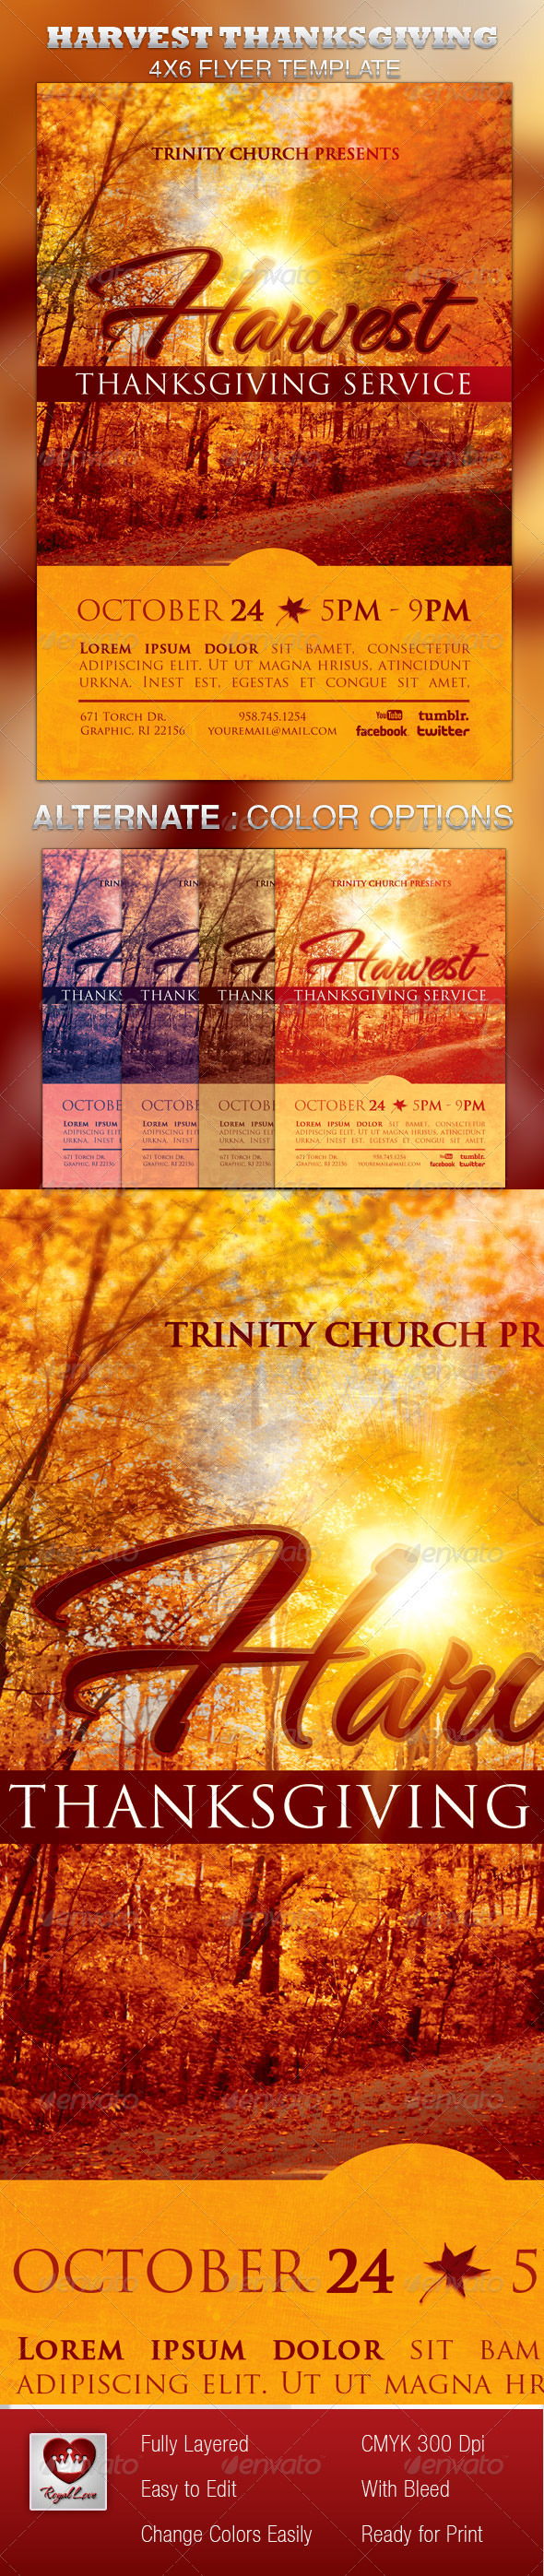 Harvest Thanksgiving Service Flyer Template - Church Flyers